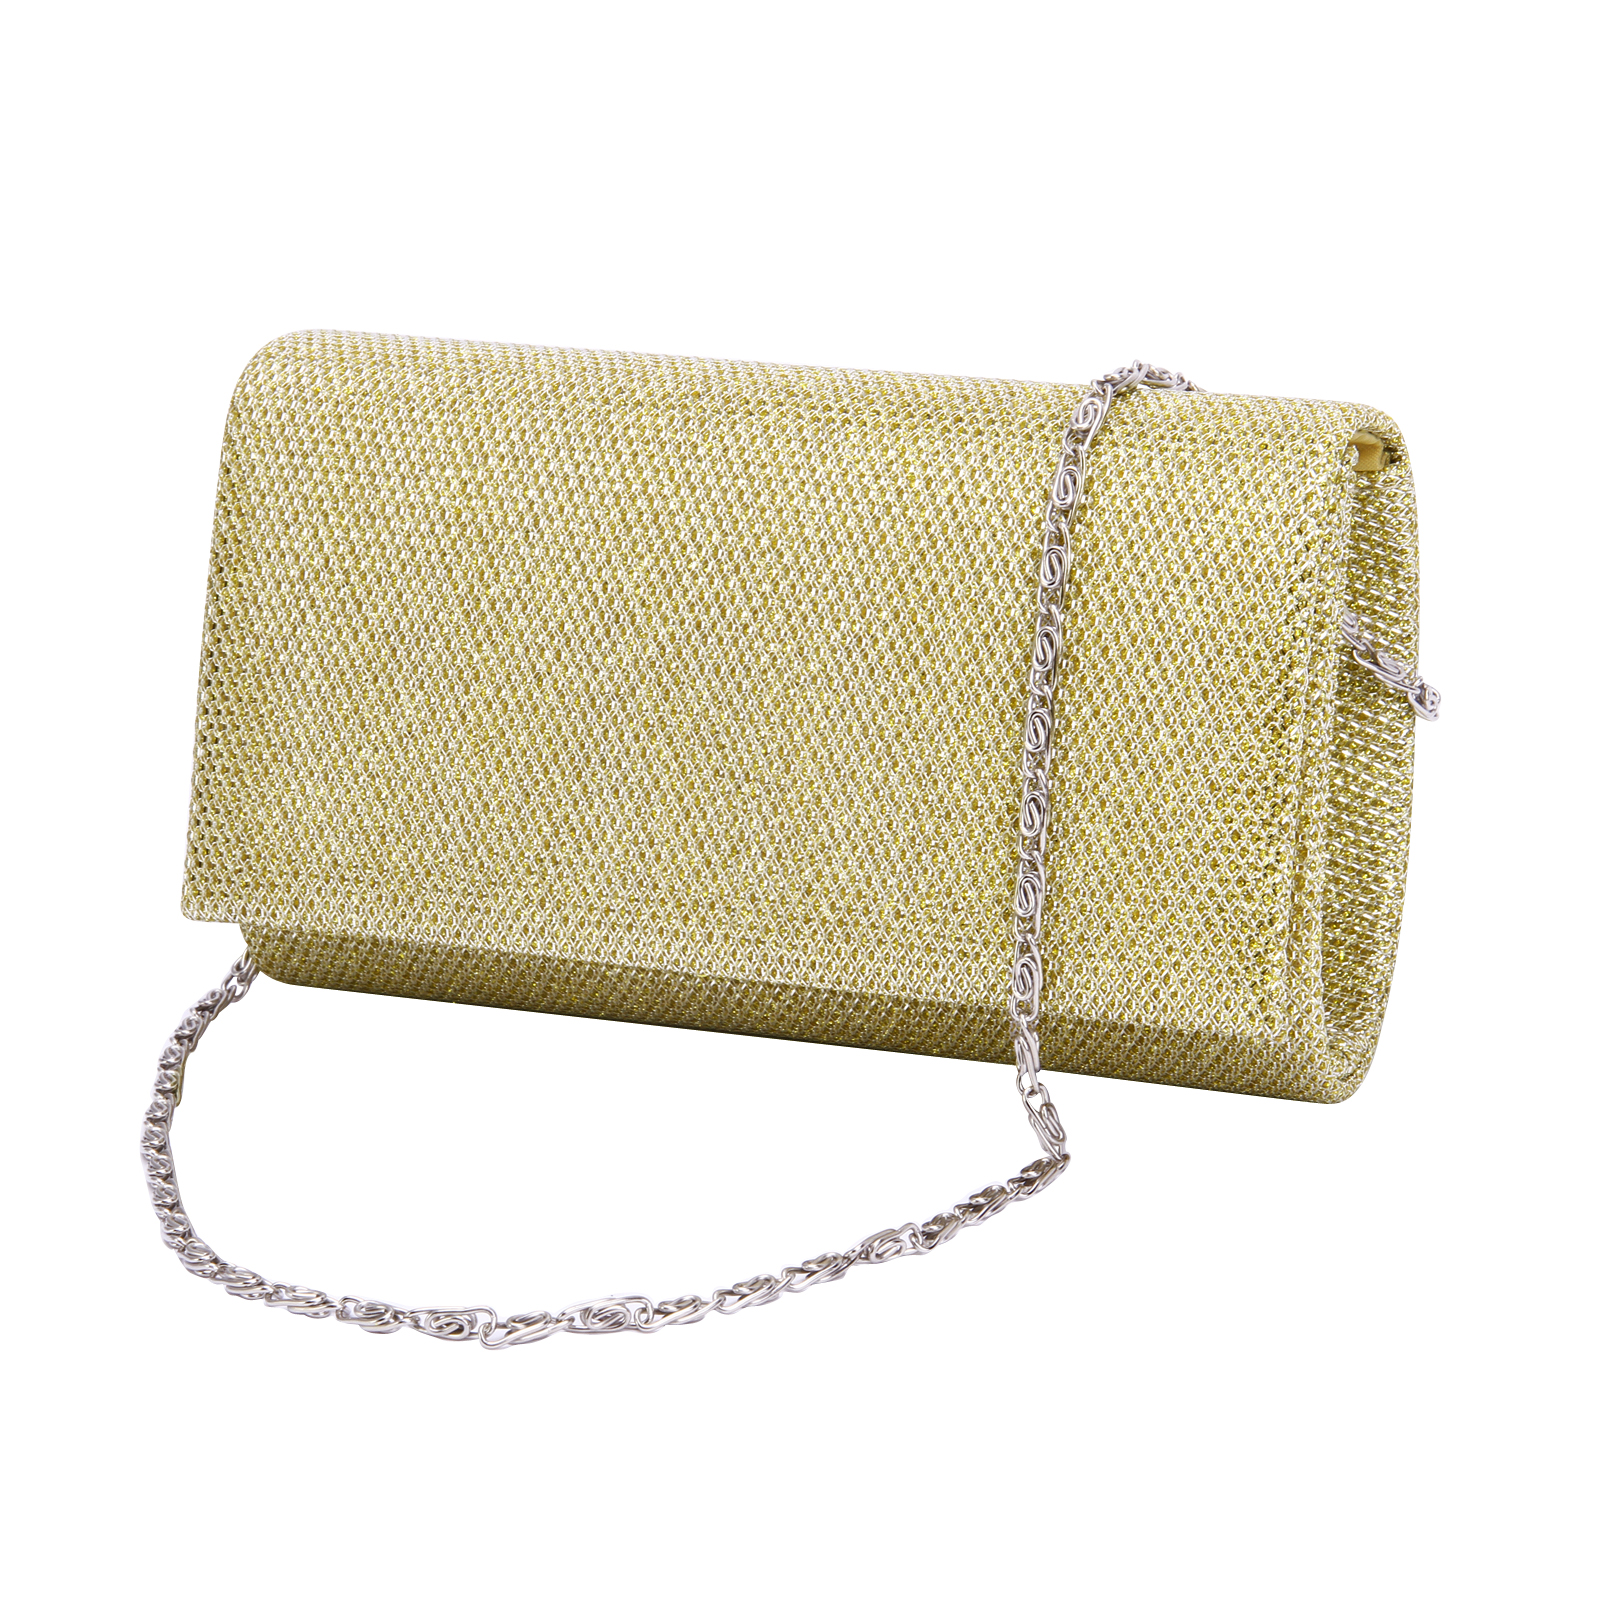 Small Womens Bridal Clutch Purse Ladies Evening Clutch Bag ...